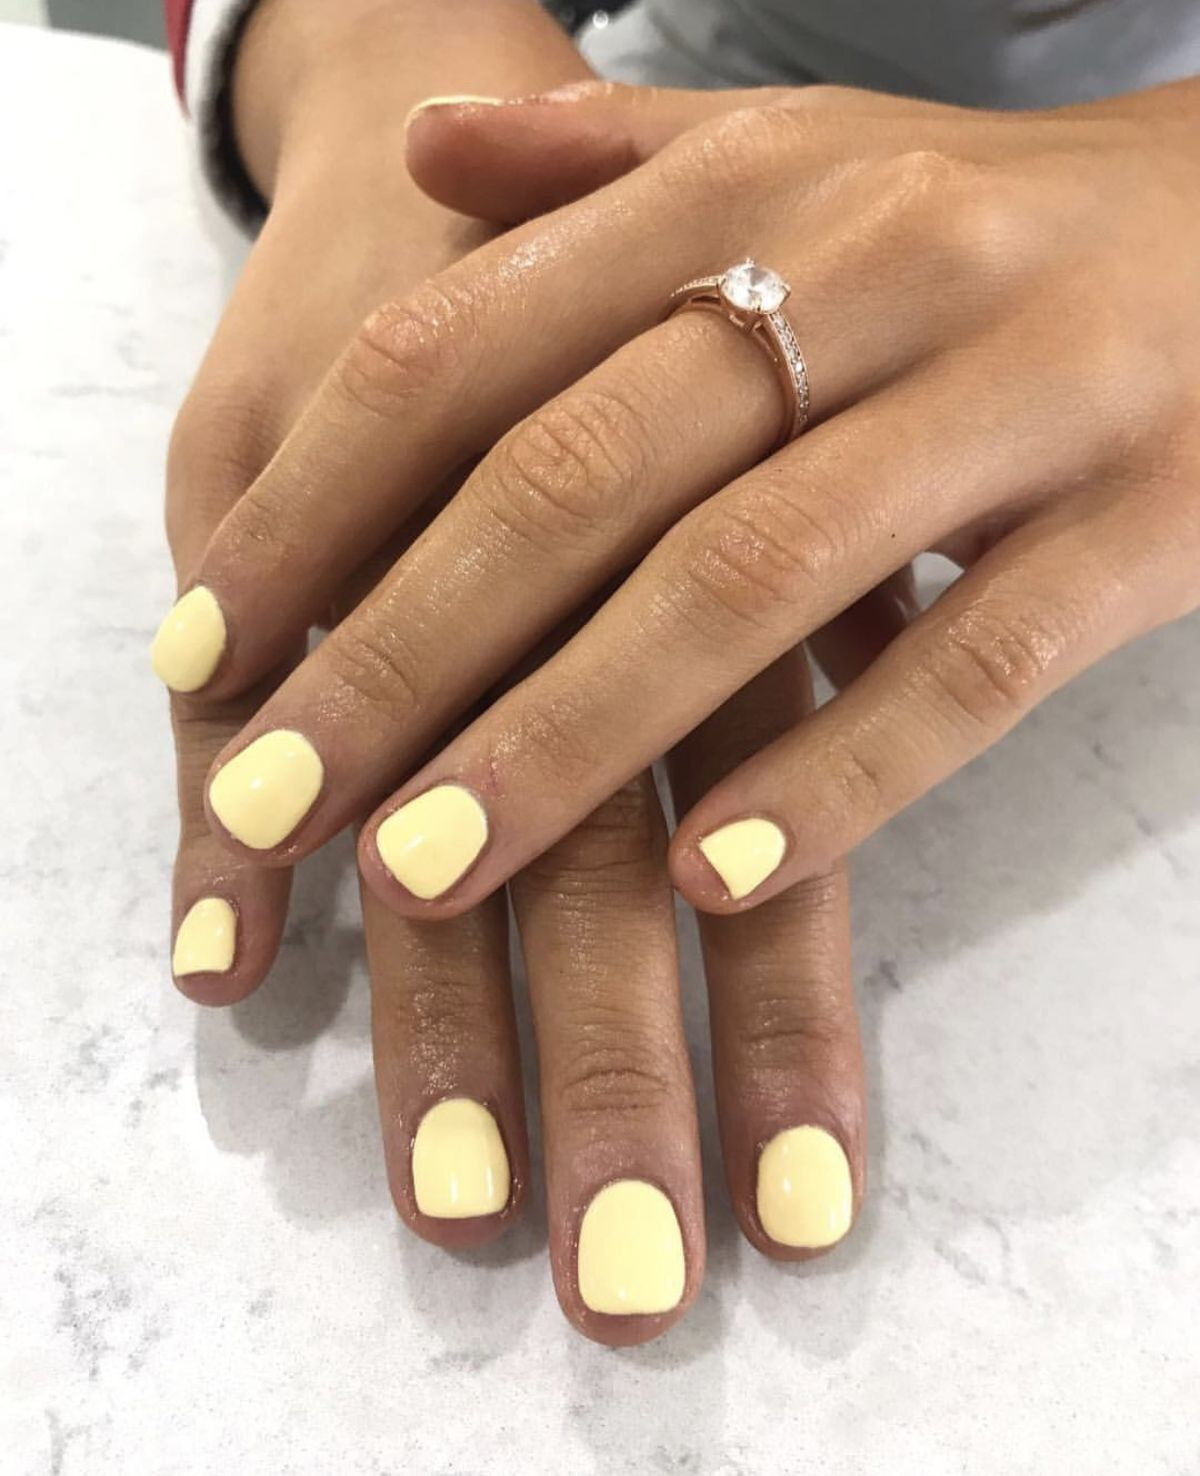 Pale Yellow Mani Manicure Summer Nails Square Oval Shape Squoval Clean Fre In 2020 Yellow Nails Nail Polish Colors Summer Trending Nail Polish Colors